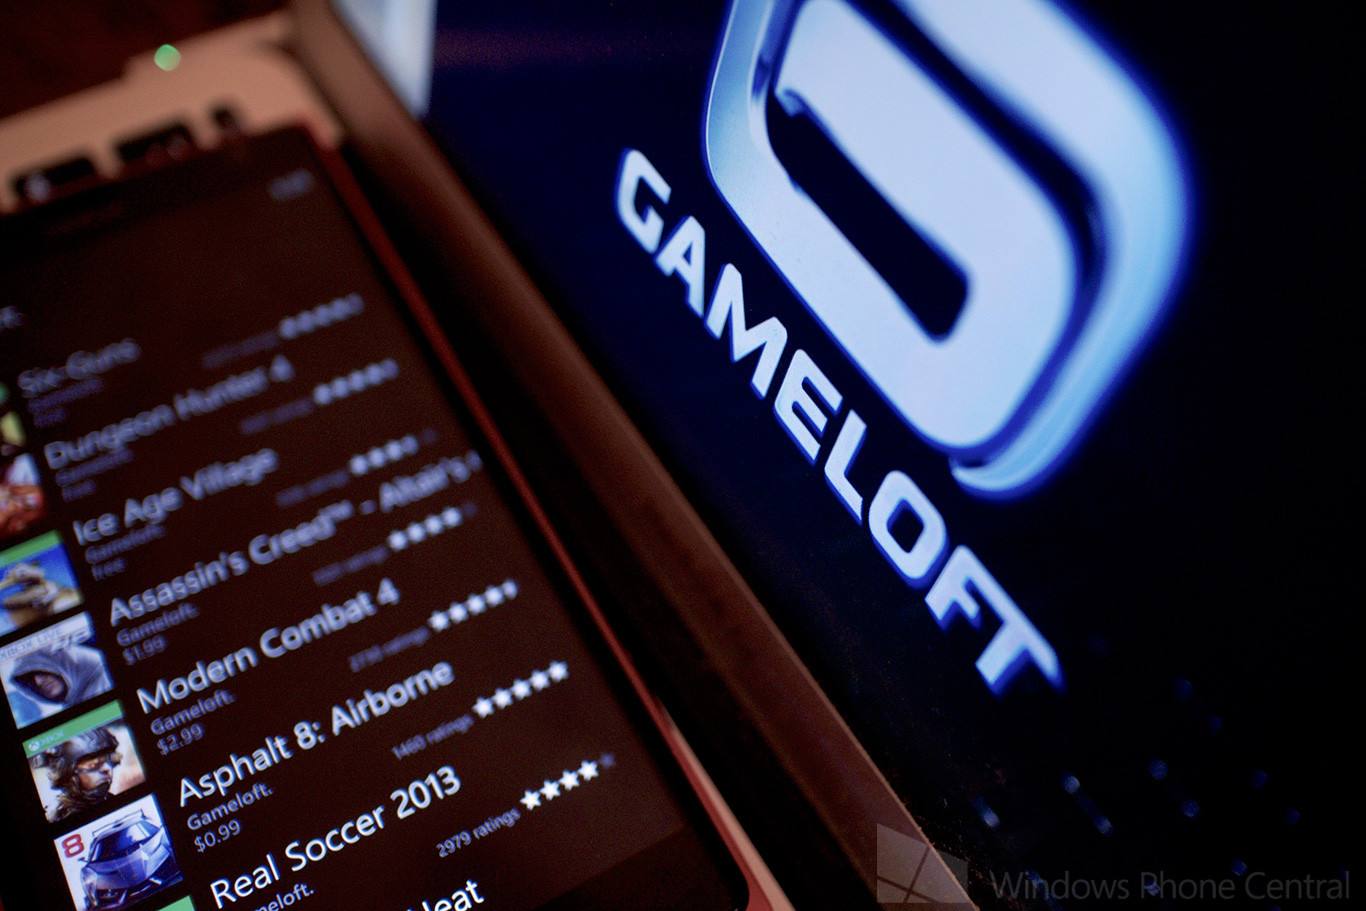 Gameloft restructure hits bottom line